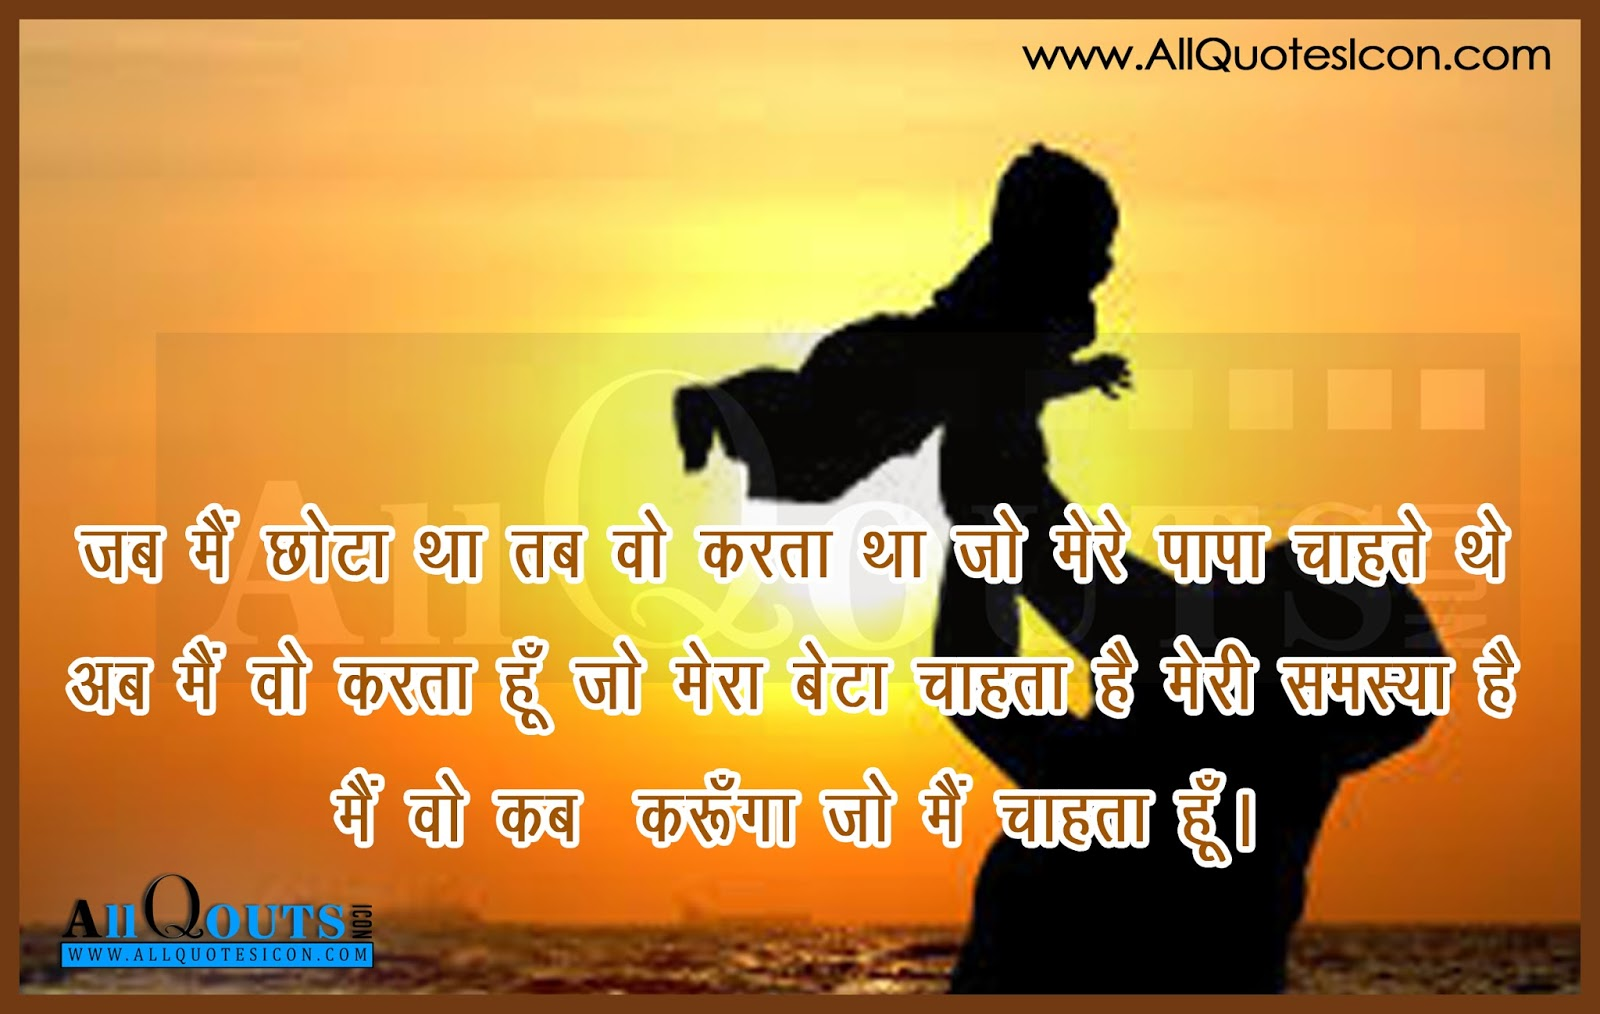 Father Quotes And Hindi Shayari Hd Wallpapers Best Life Motivational